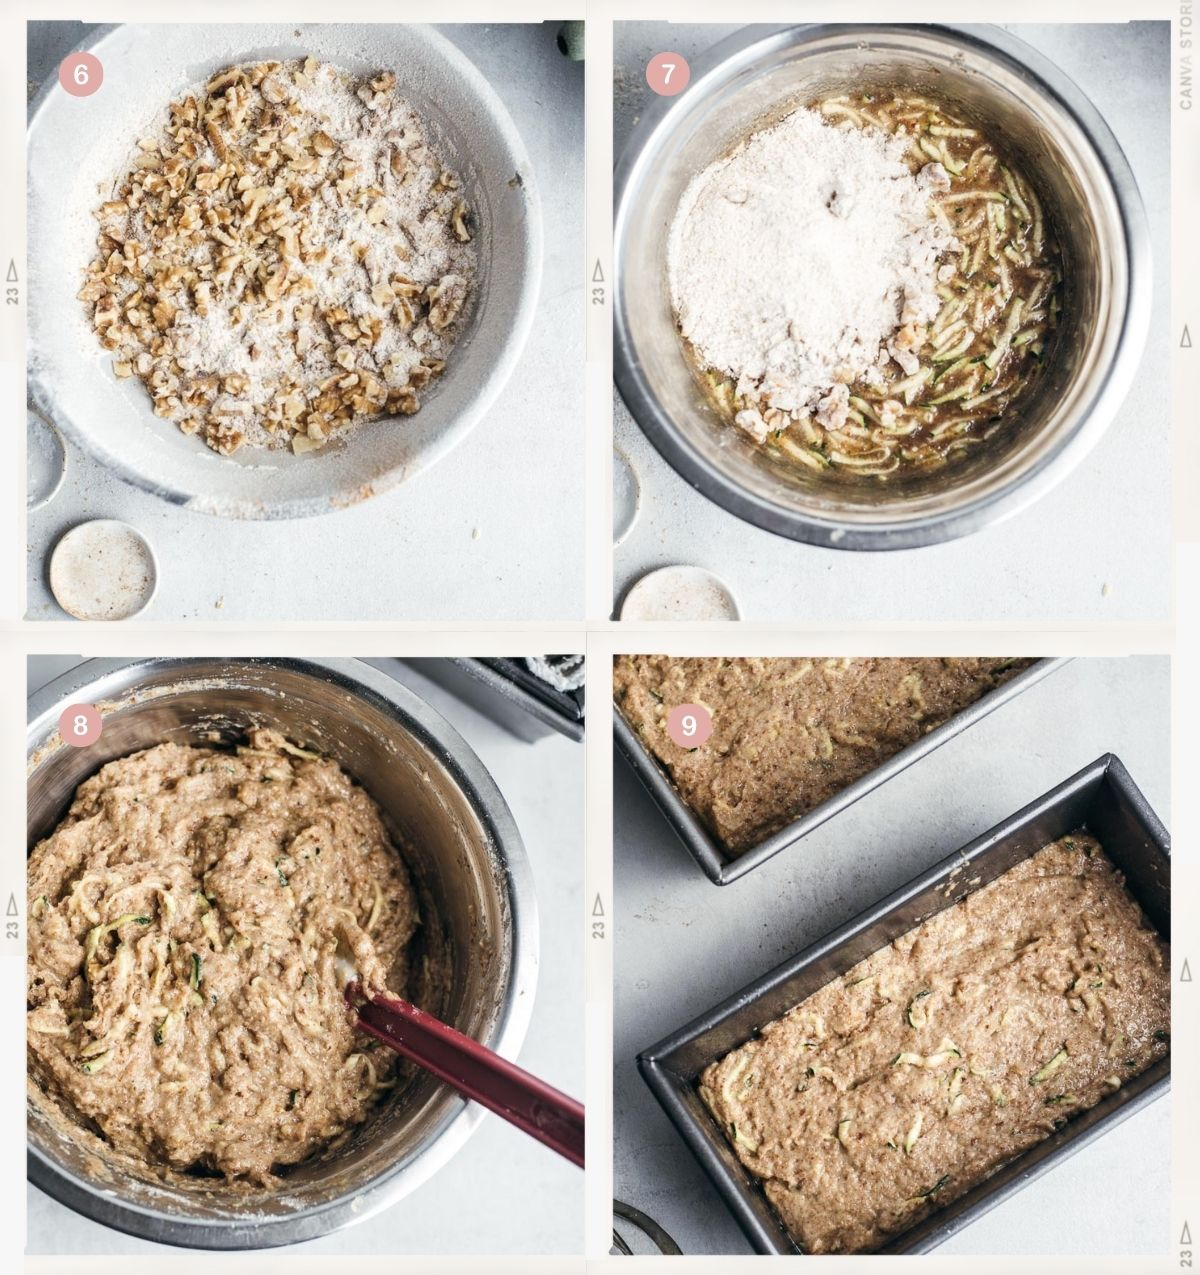 Collage of four photos showing the process of making vegan zucchini bread step by step